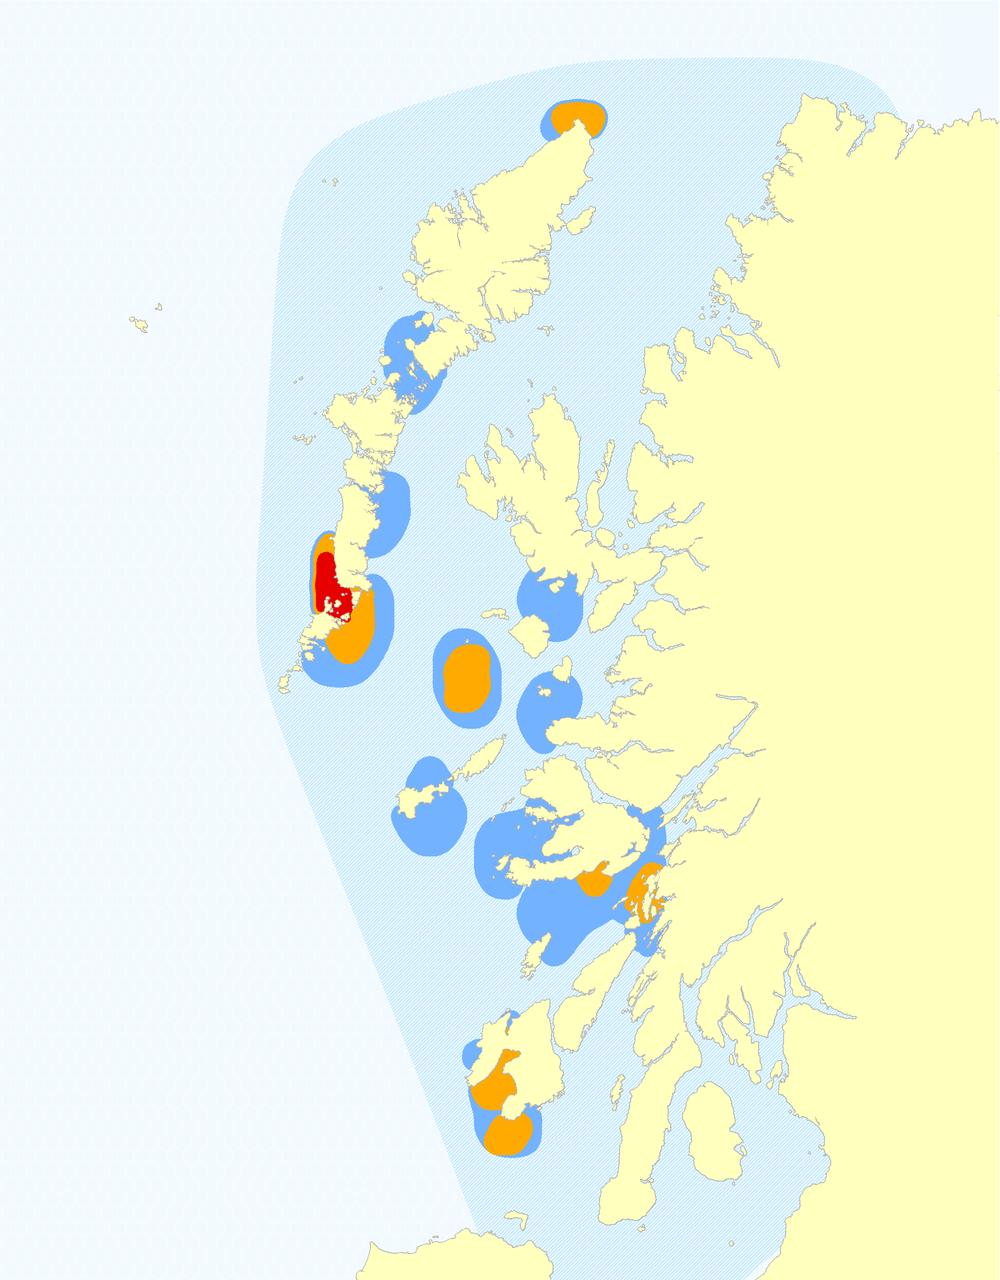 Bottlenose Dolphin Hotspot Map